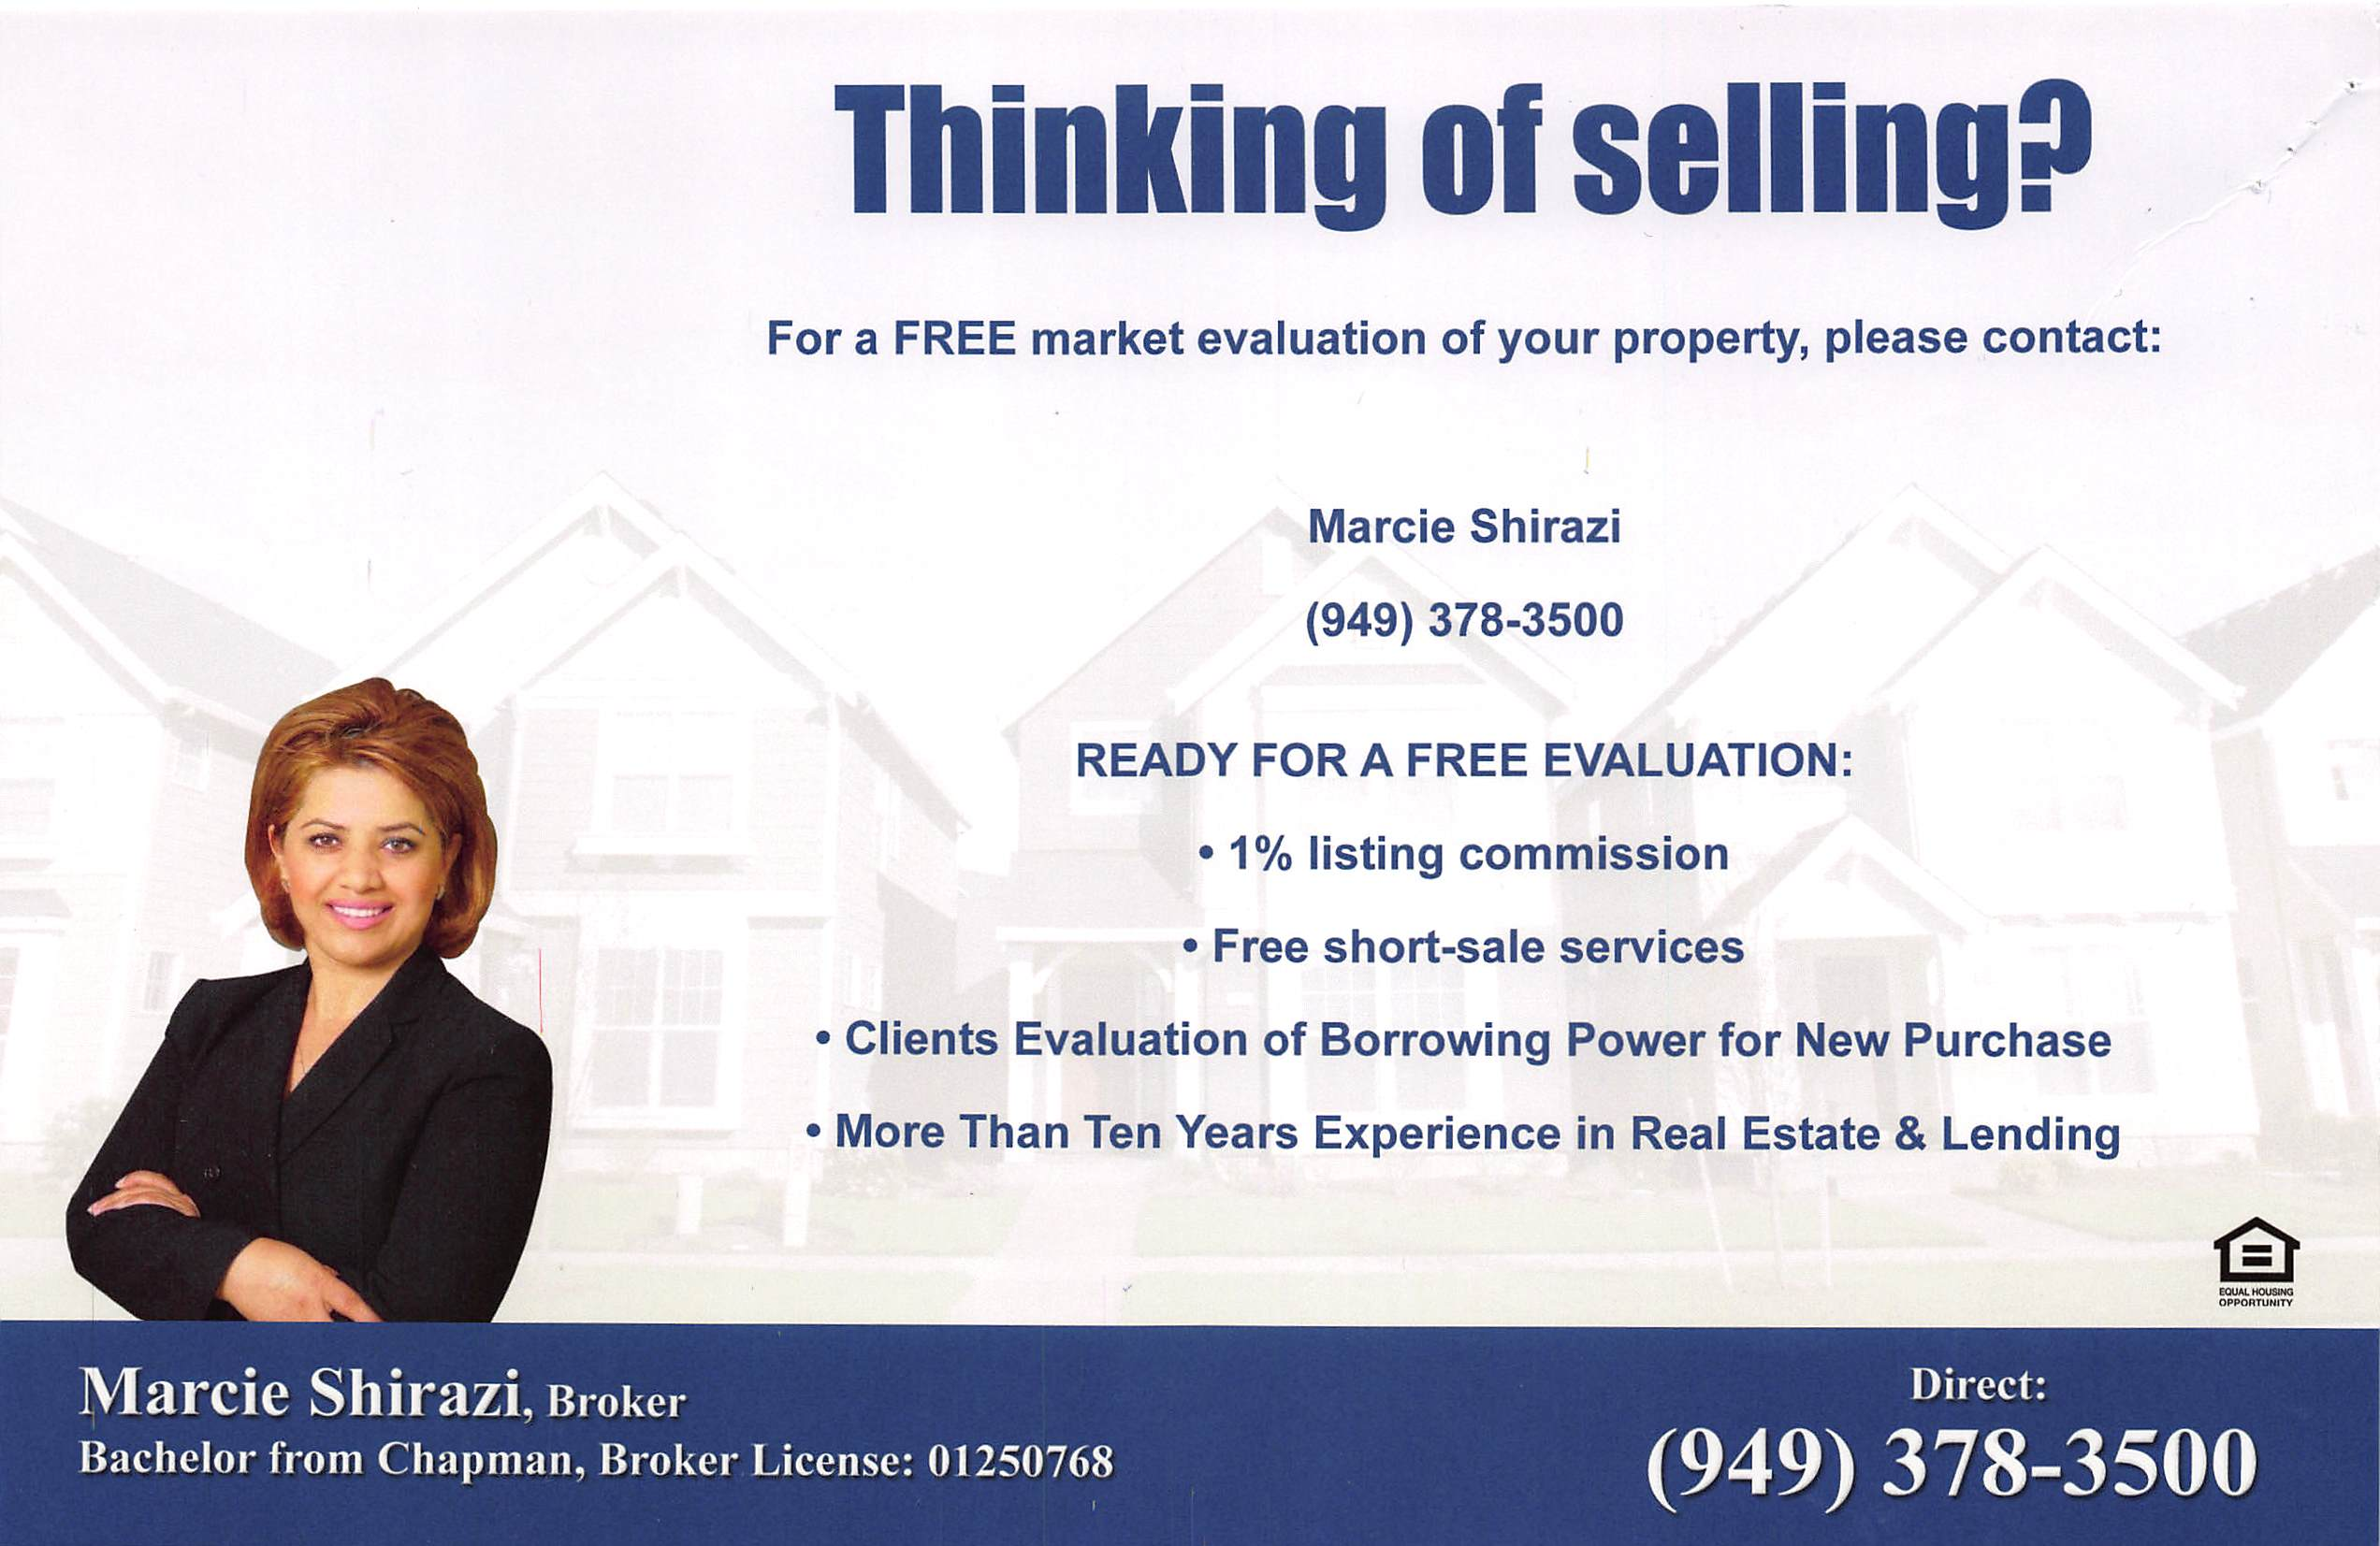 Realtor-ad-offers-real-estate-and-mortgage2.jpg